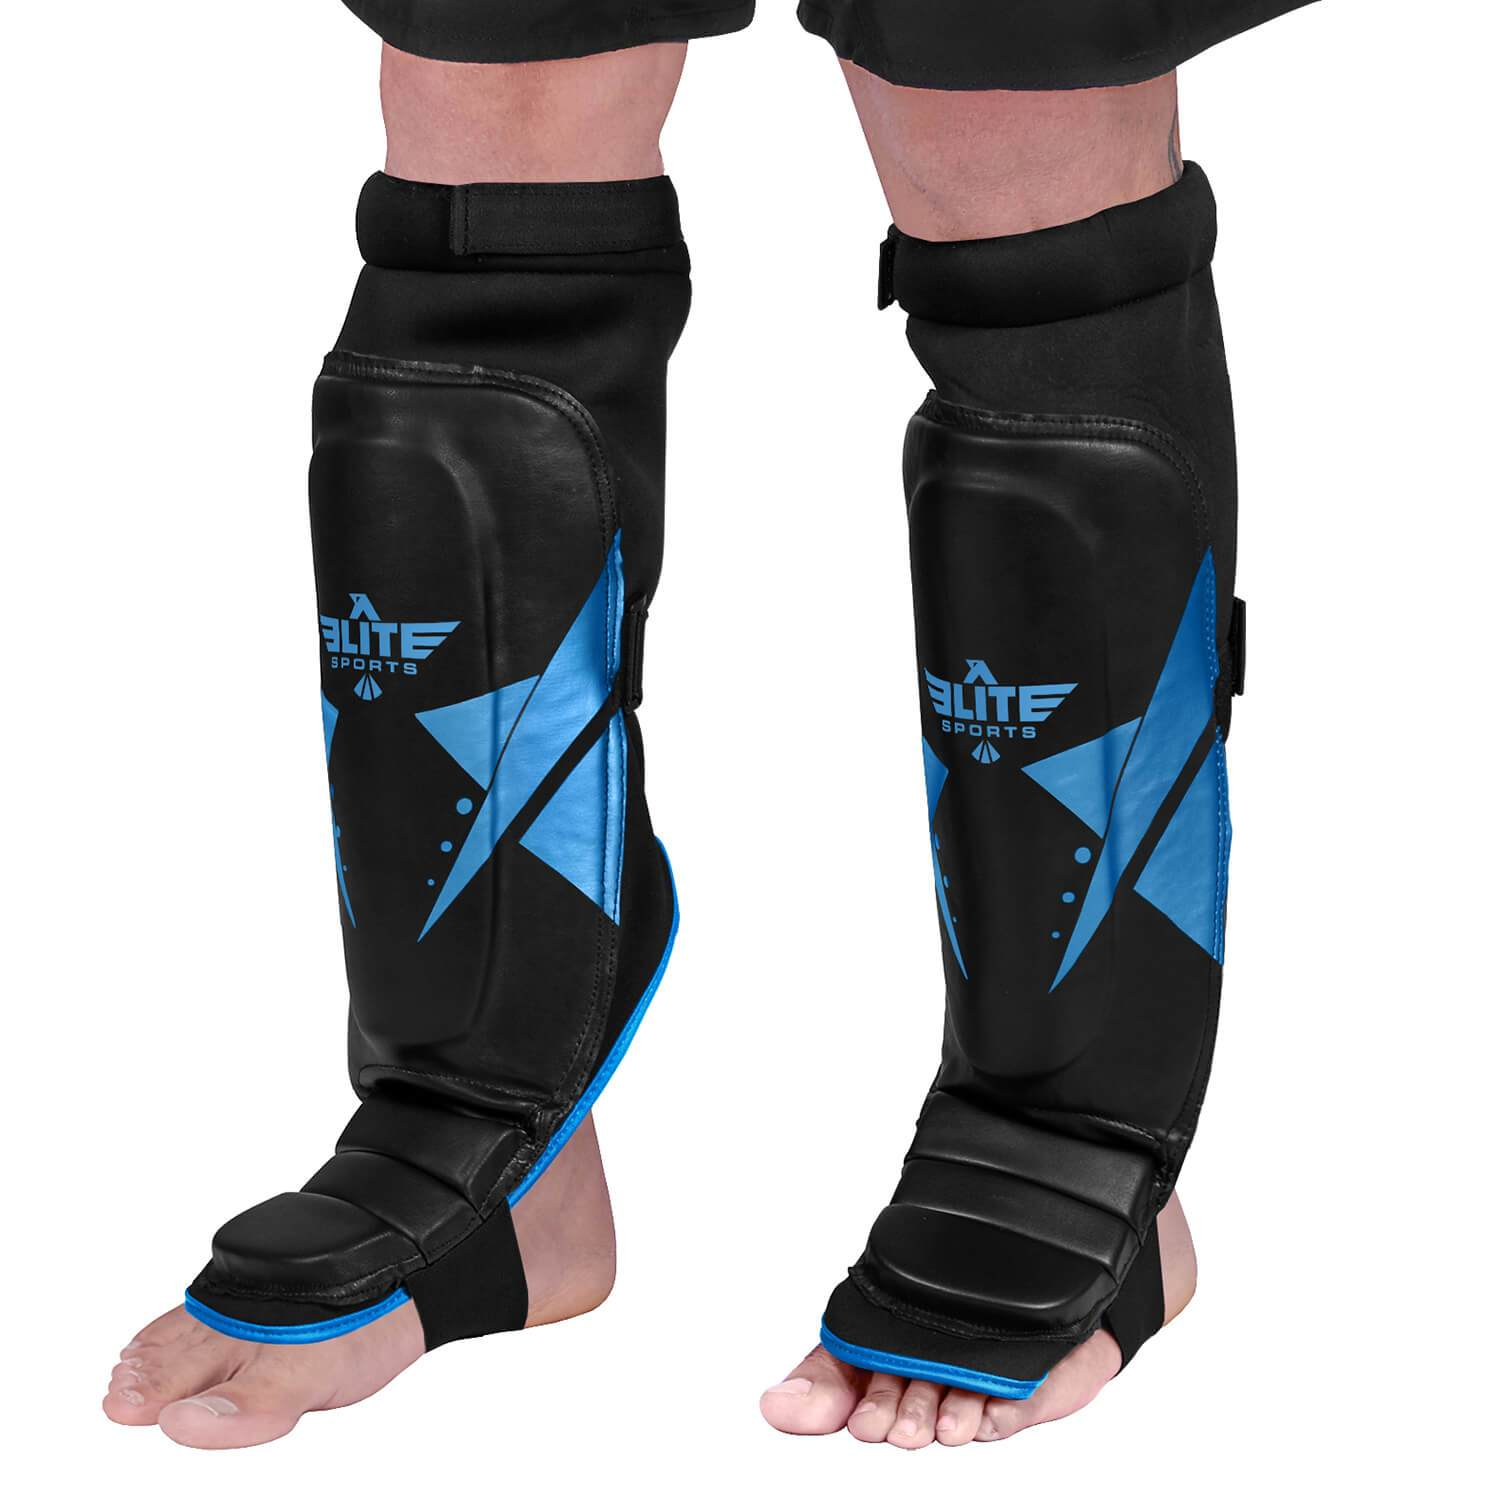 Load image into Gallery viewer, Elite Sports Star Series Black/Blue Training Shin Guards